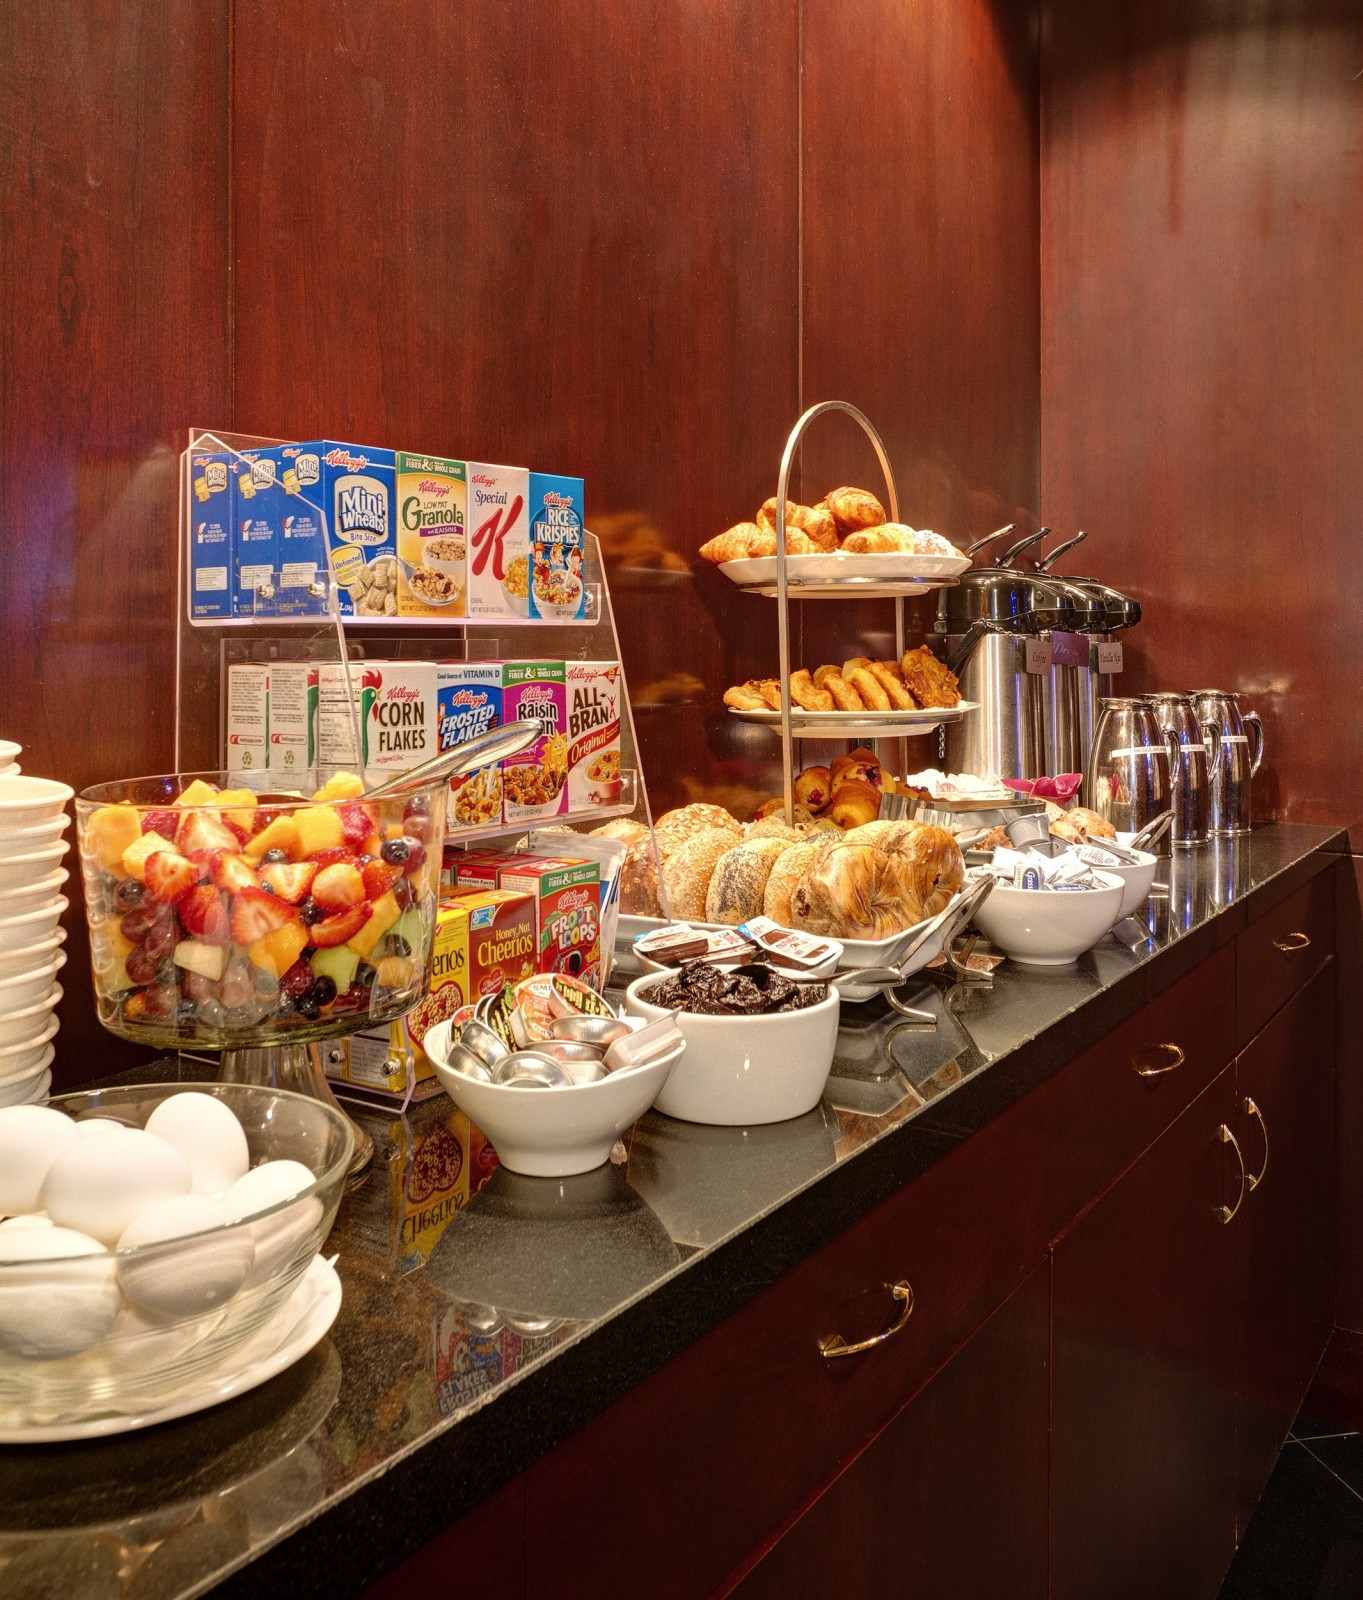 Library Hotel Offers A Complimentary Continental Breakfast Every Day For Our Guests